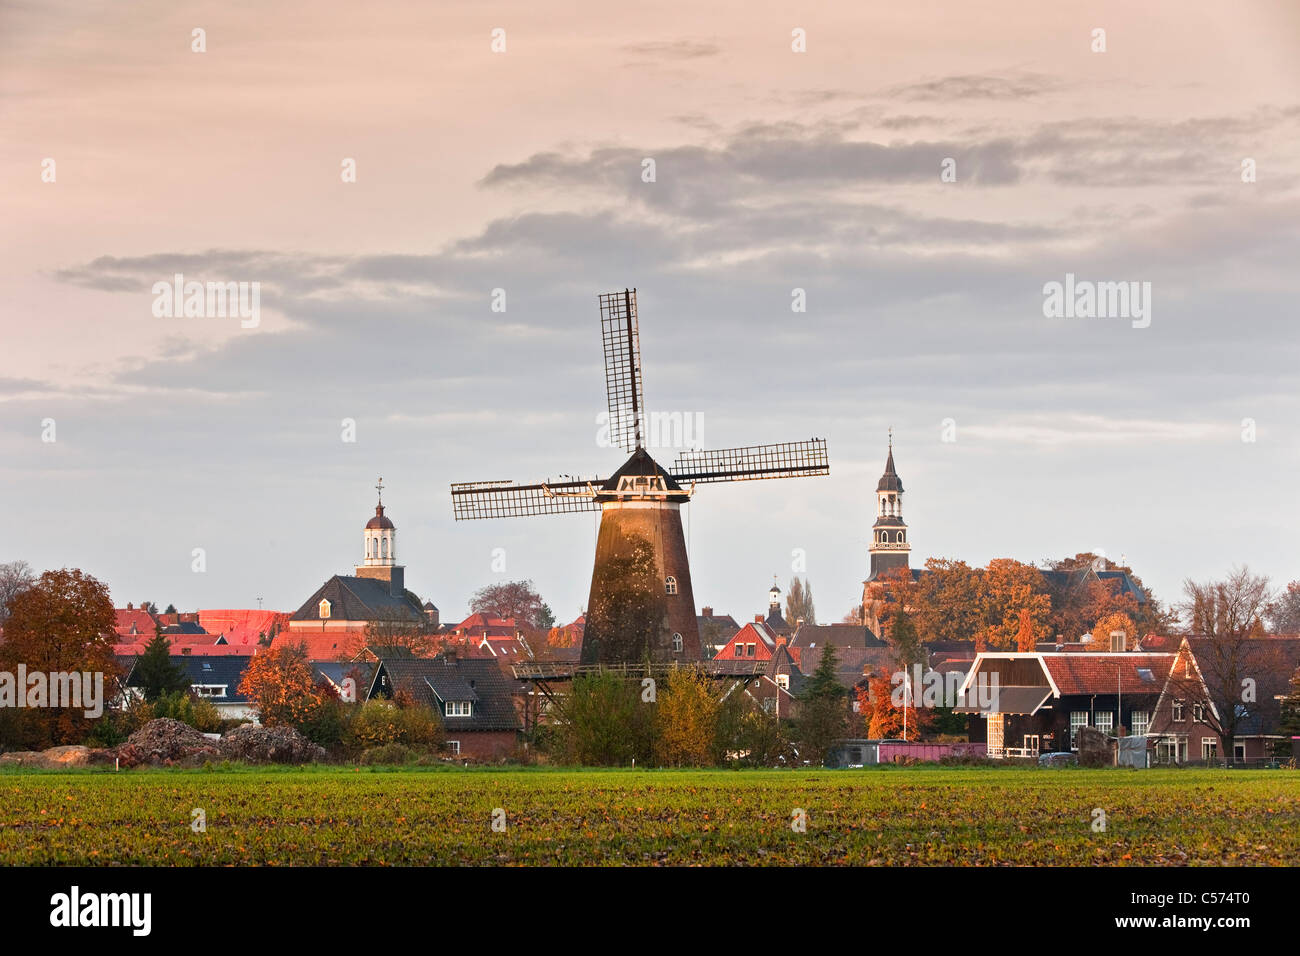 The Netherlands, Ootmarsum. View on village with windmill and churches. Autumn. - Stock Image